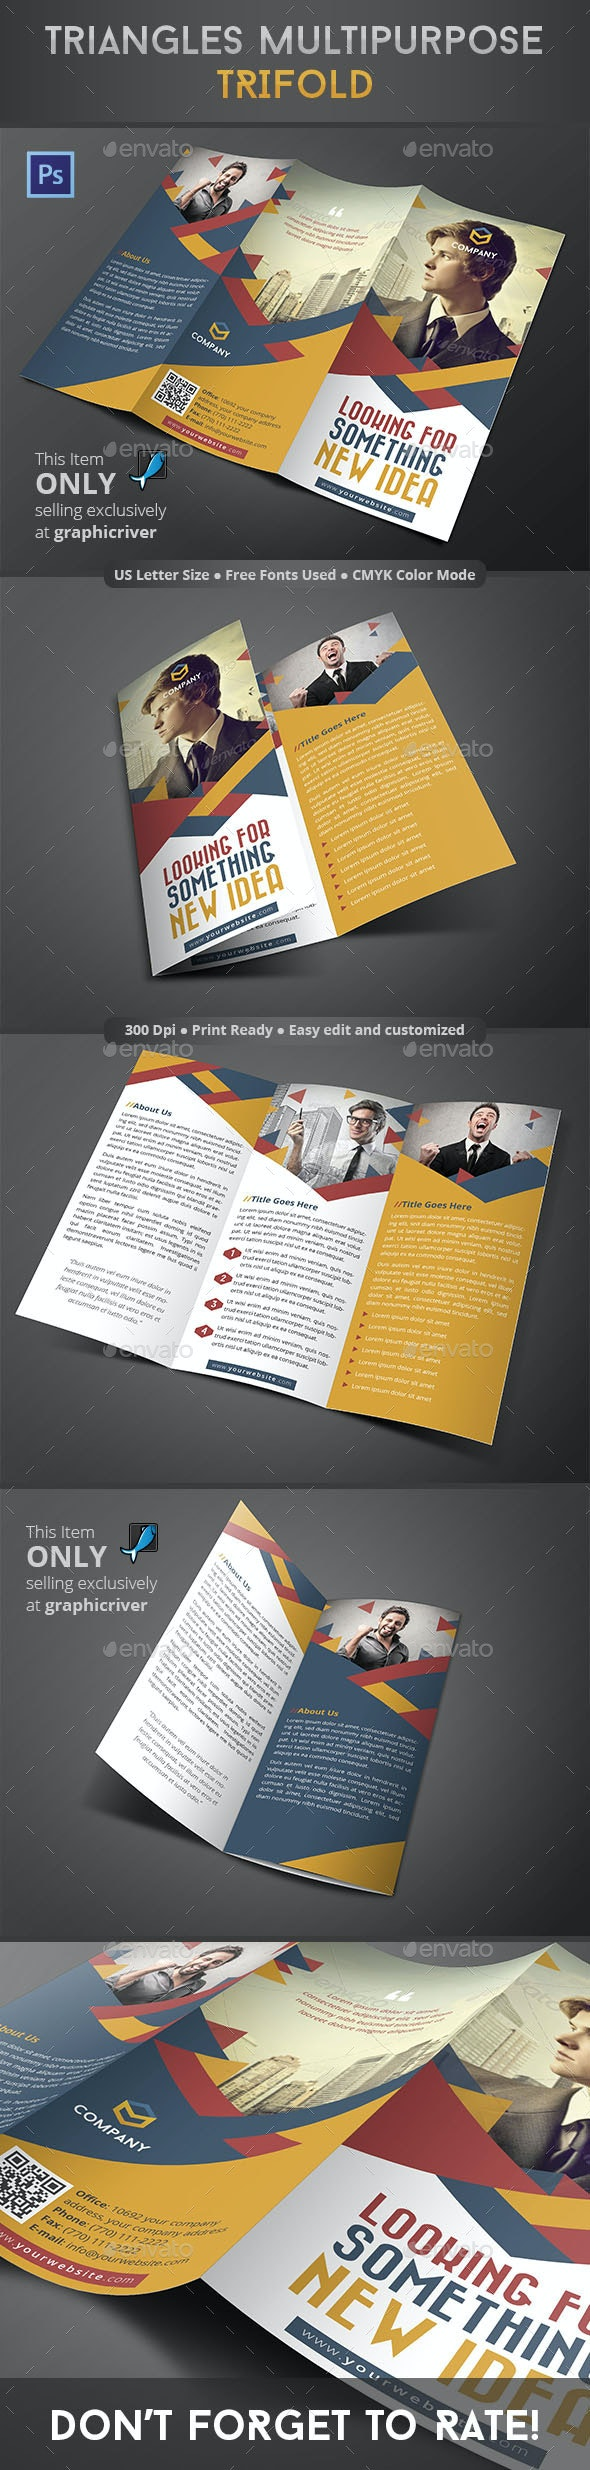 Triangles Multipurpose Trifold - Informational Brochures